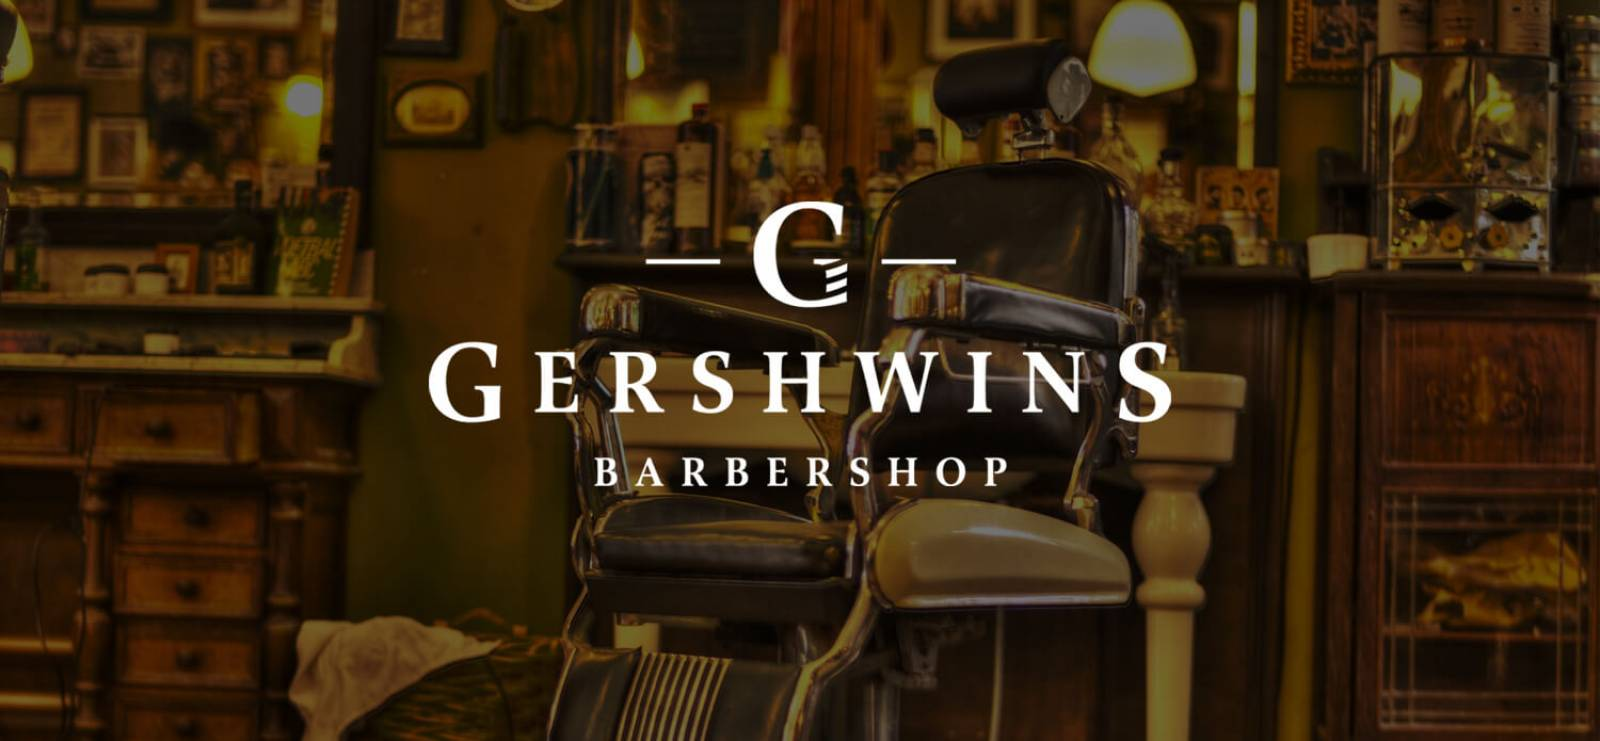 Gershwins-logo-3-design-agency-graphic-design-canterbury.jpg